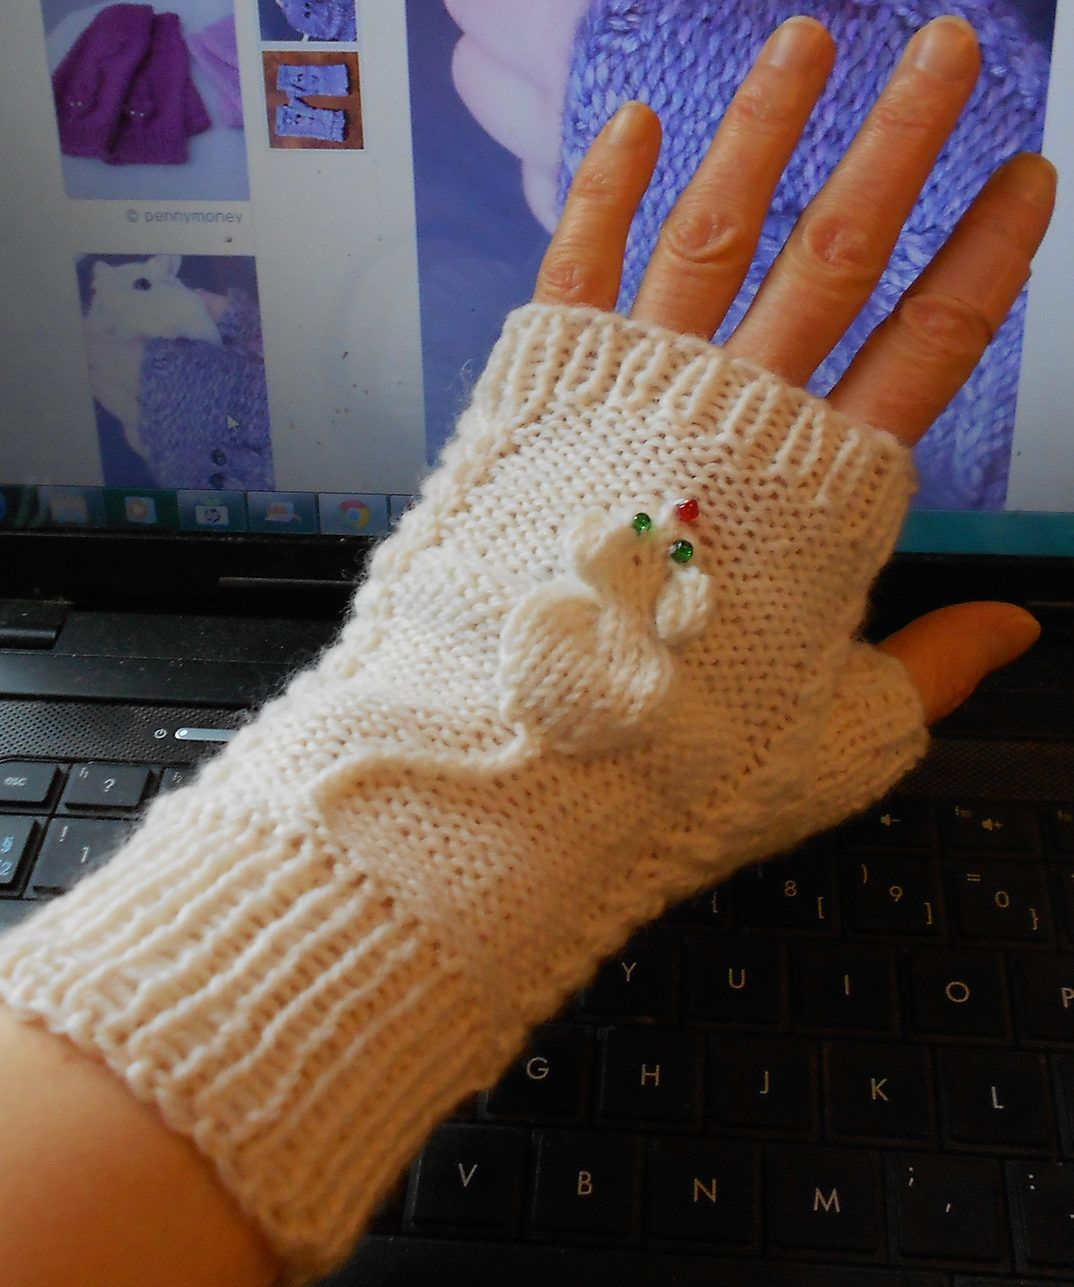 Free knitting pattern for squeaky mitts melanie galls gerbil fingerless gloves free knitting pattern bankloansurffo Image collections